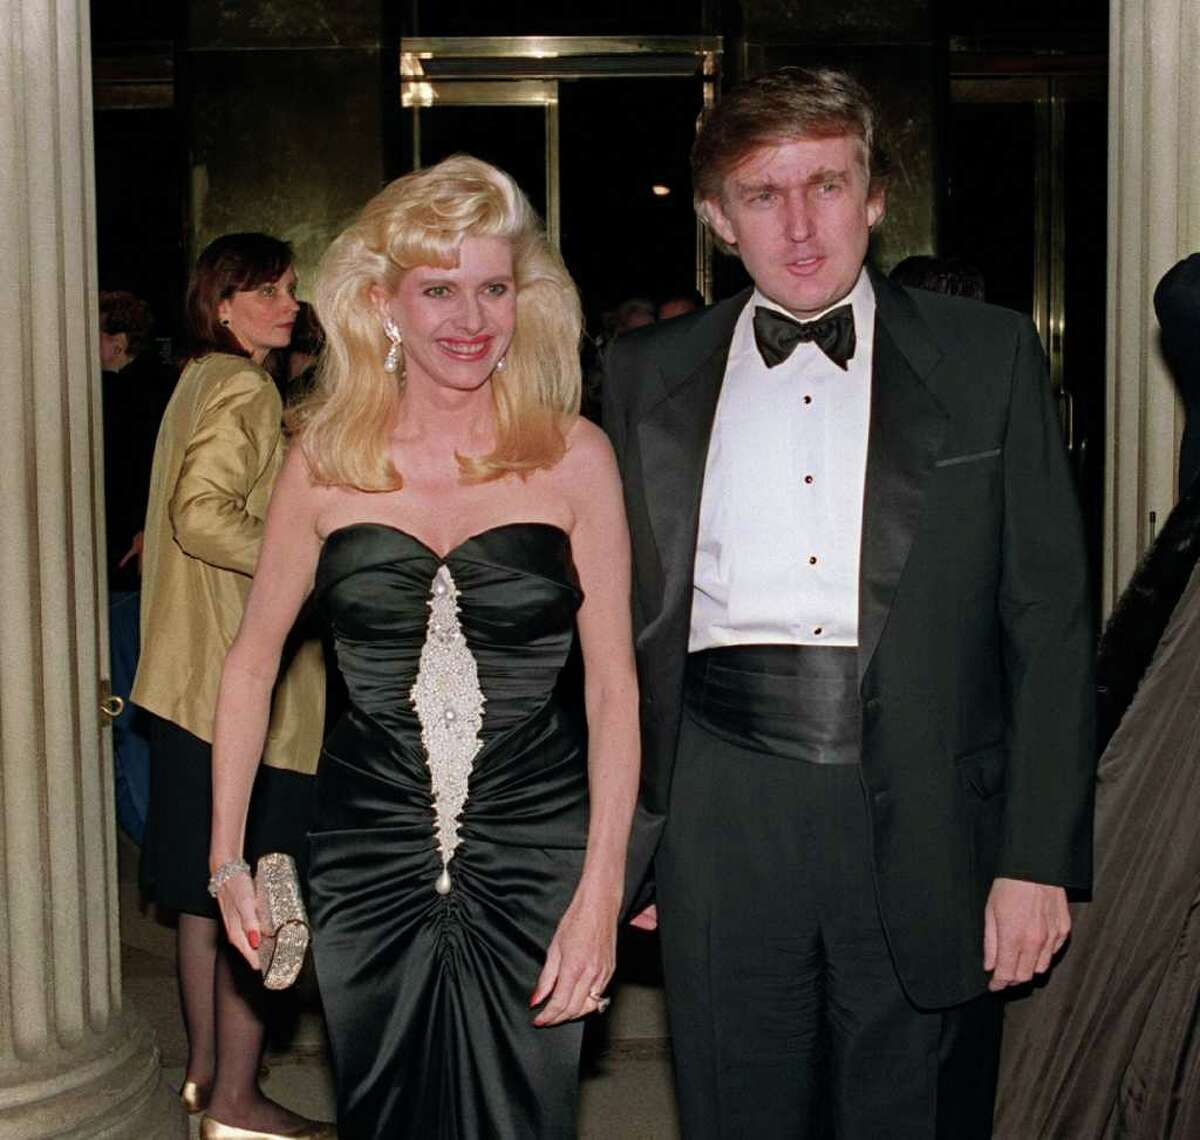 NEW YORK, NY - DECEMBER 4: Billionaire Donald Trump and his wife, Ivana, Dec. 4, 1989, at a social engagement in New York.